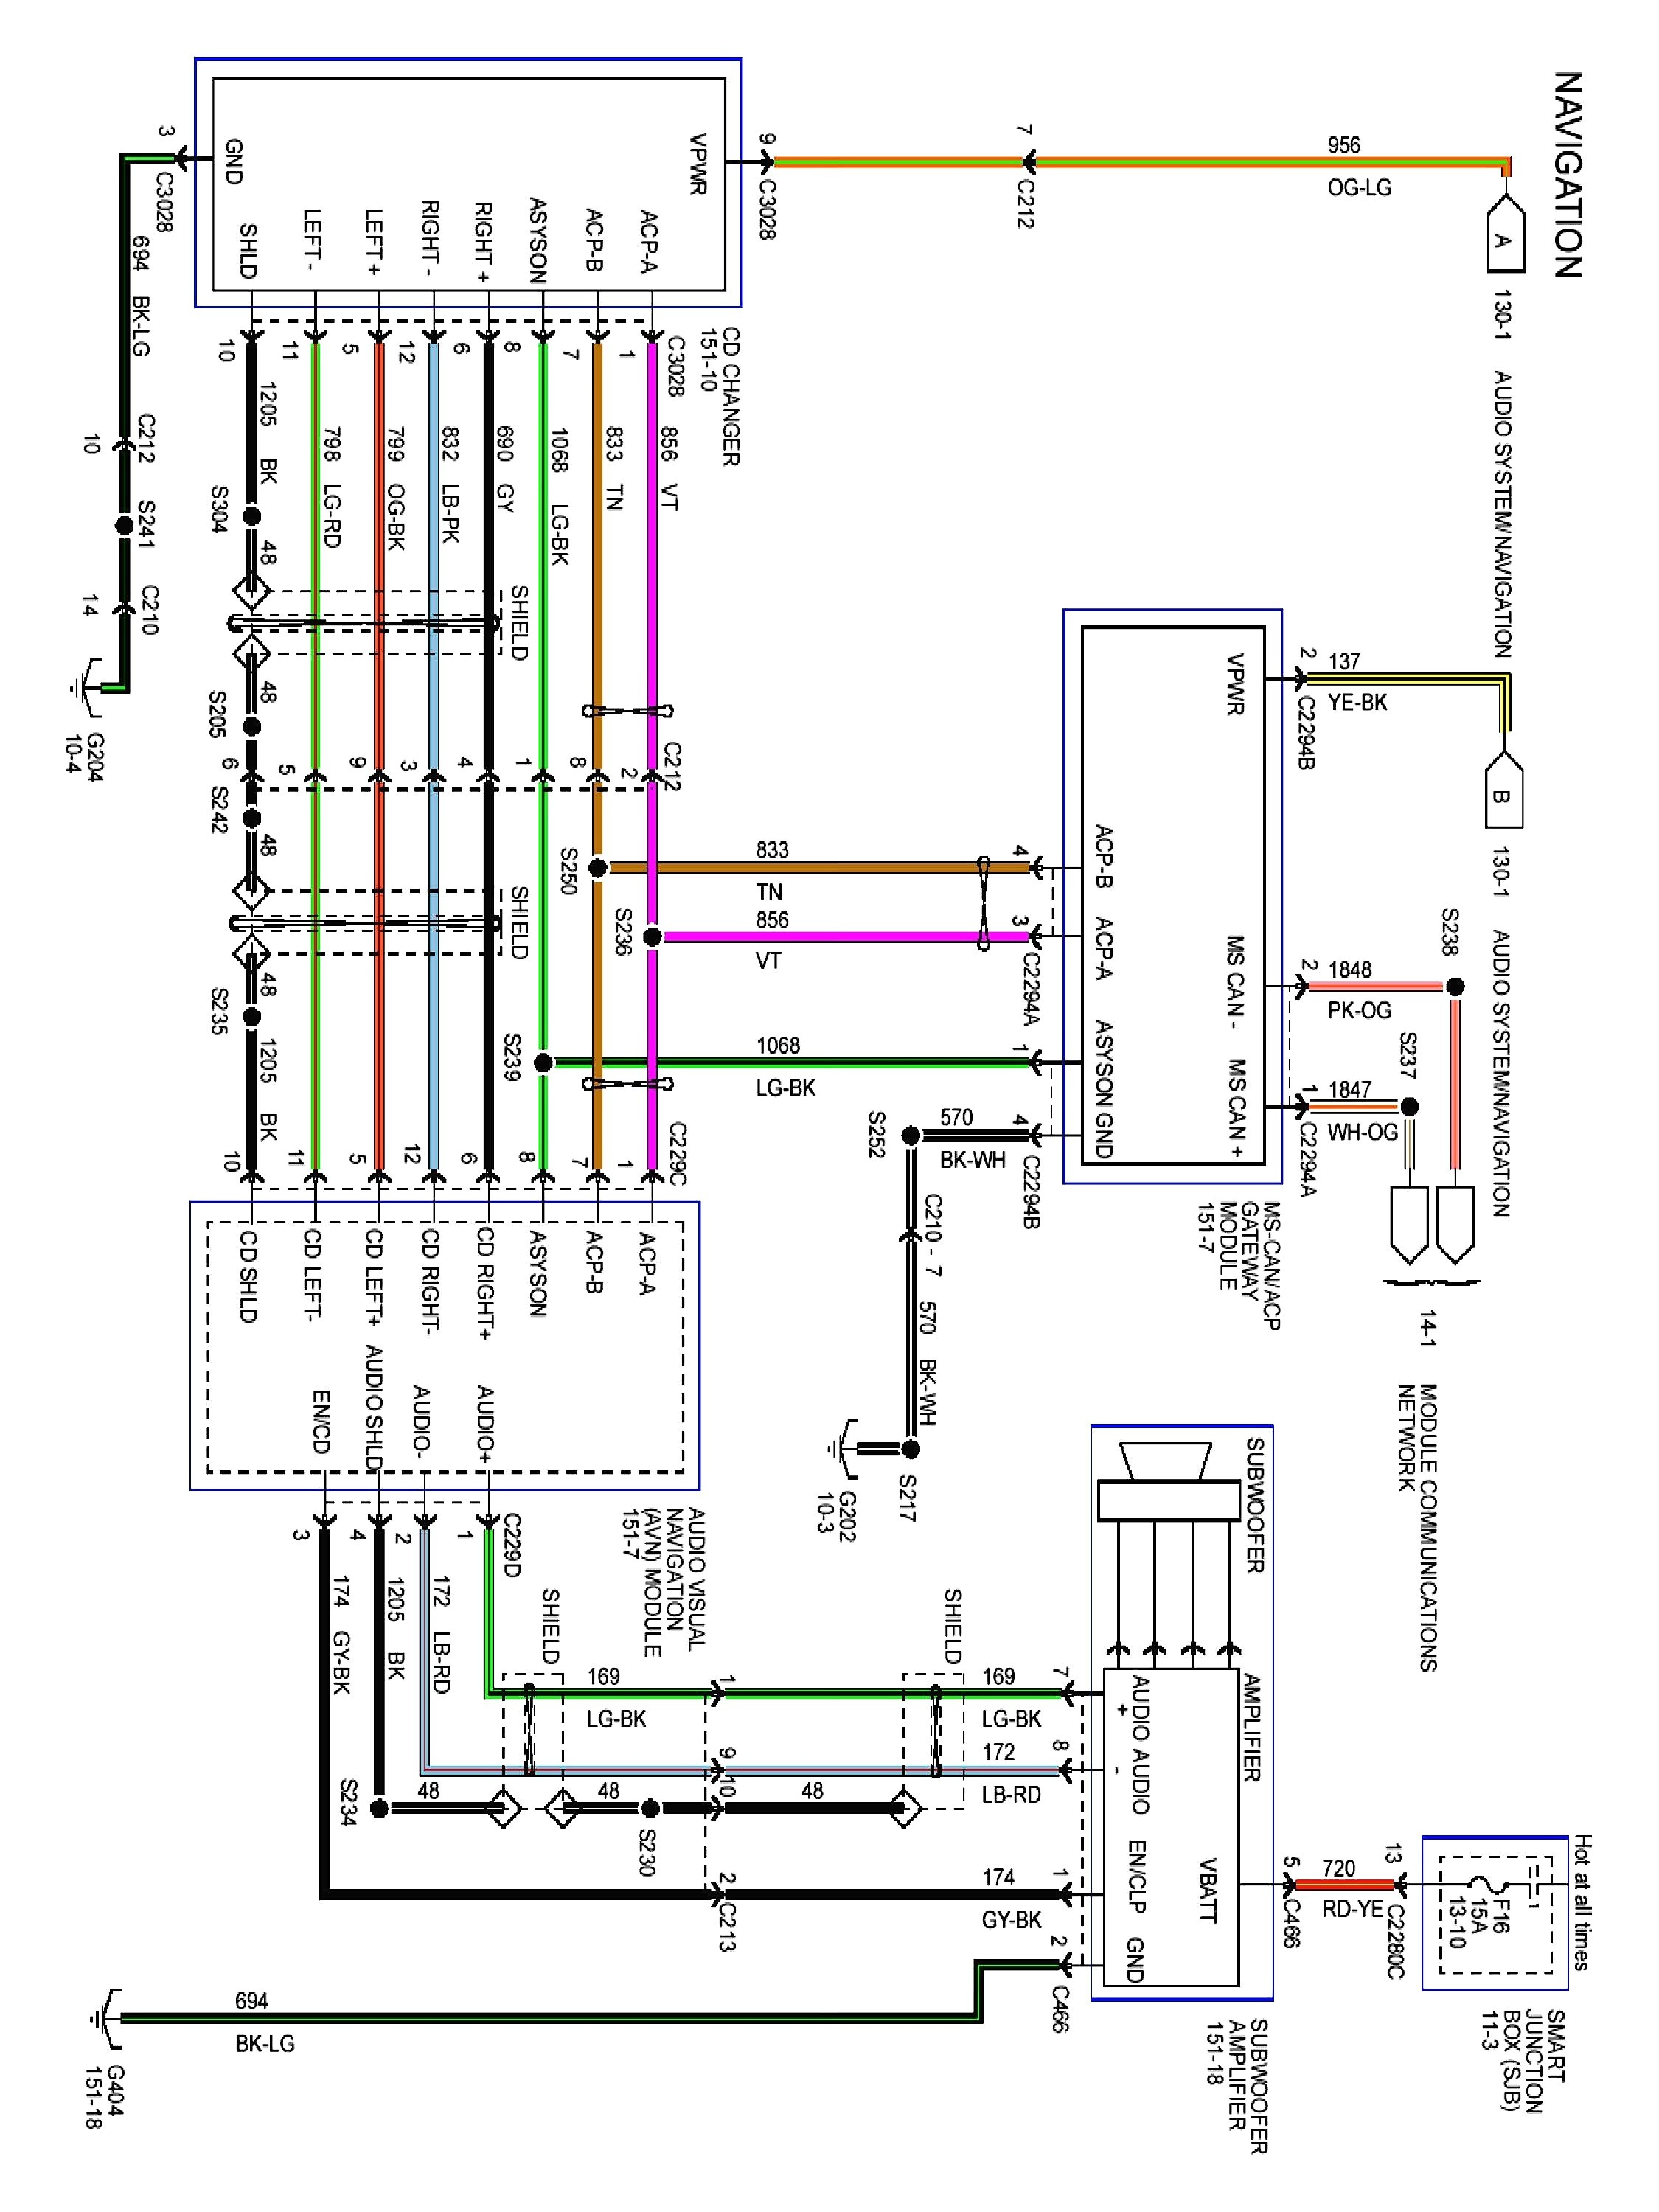 Ford F 650 Wiring Diagrams - Data Wiring Pair turn-physical -  turn-physical.newmorpheus.it | Ford F650 Wire Diagram |  | newmorpheus.it